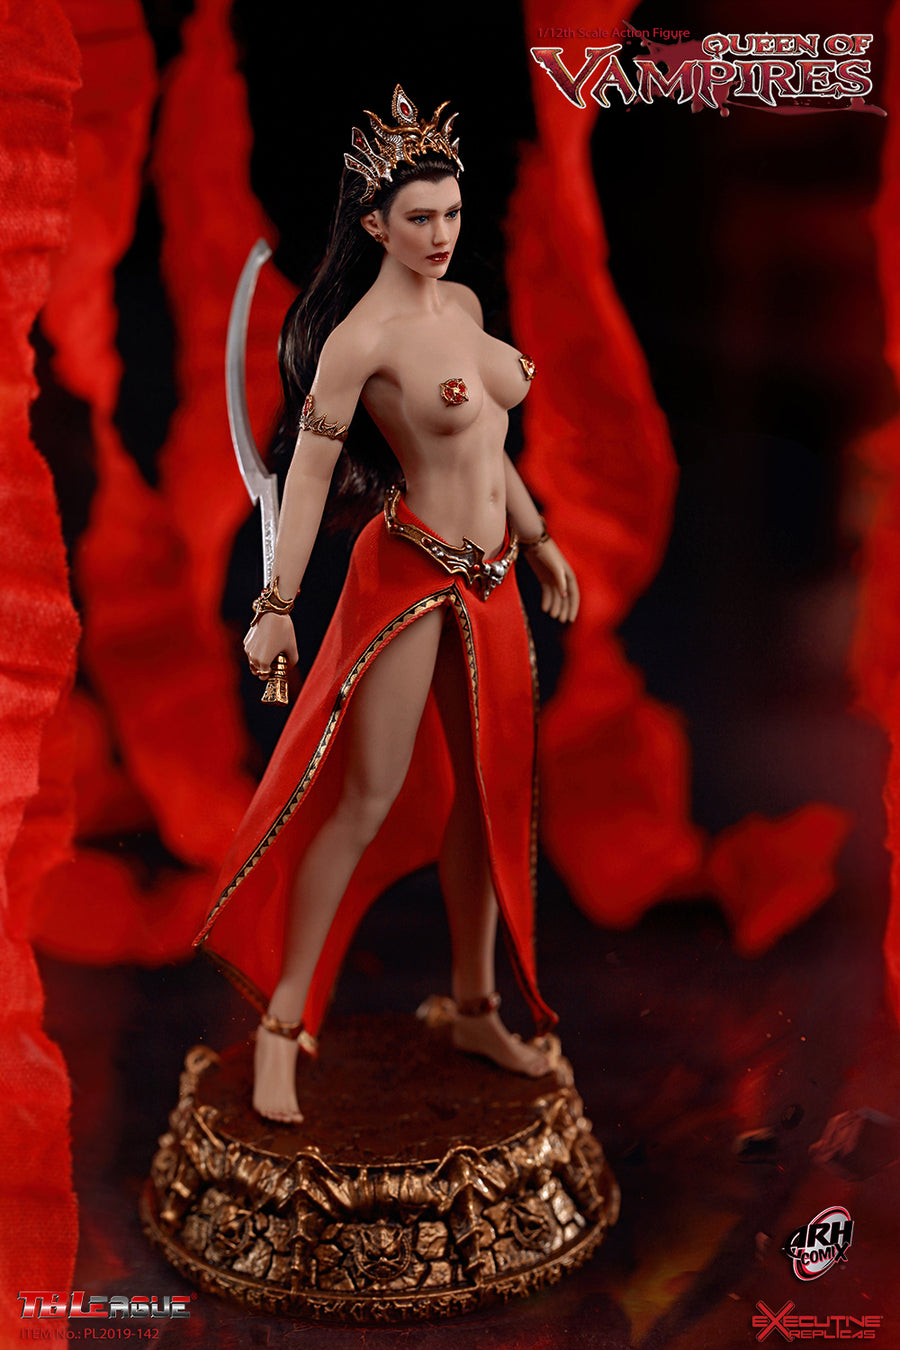 1/12 - Queen Of Vampires - Female Foot Set